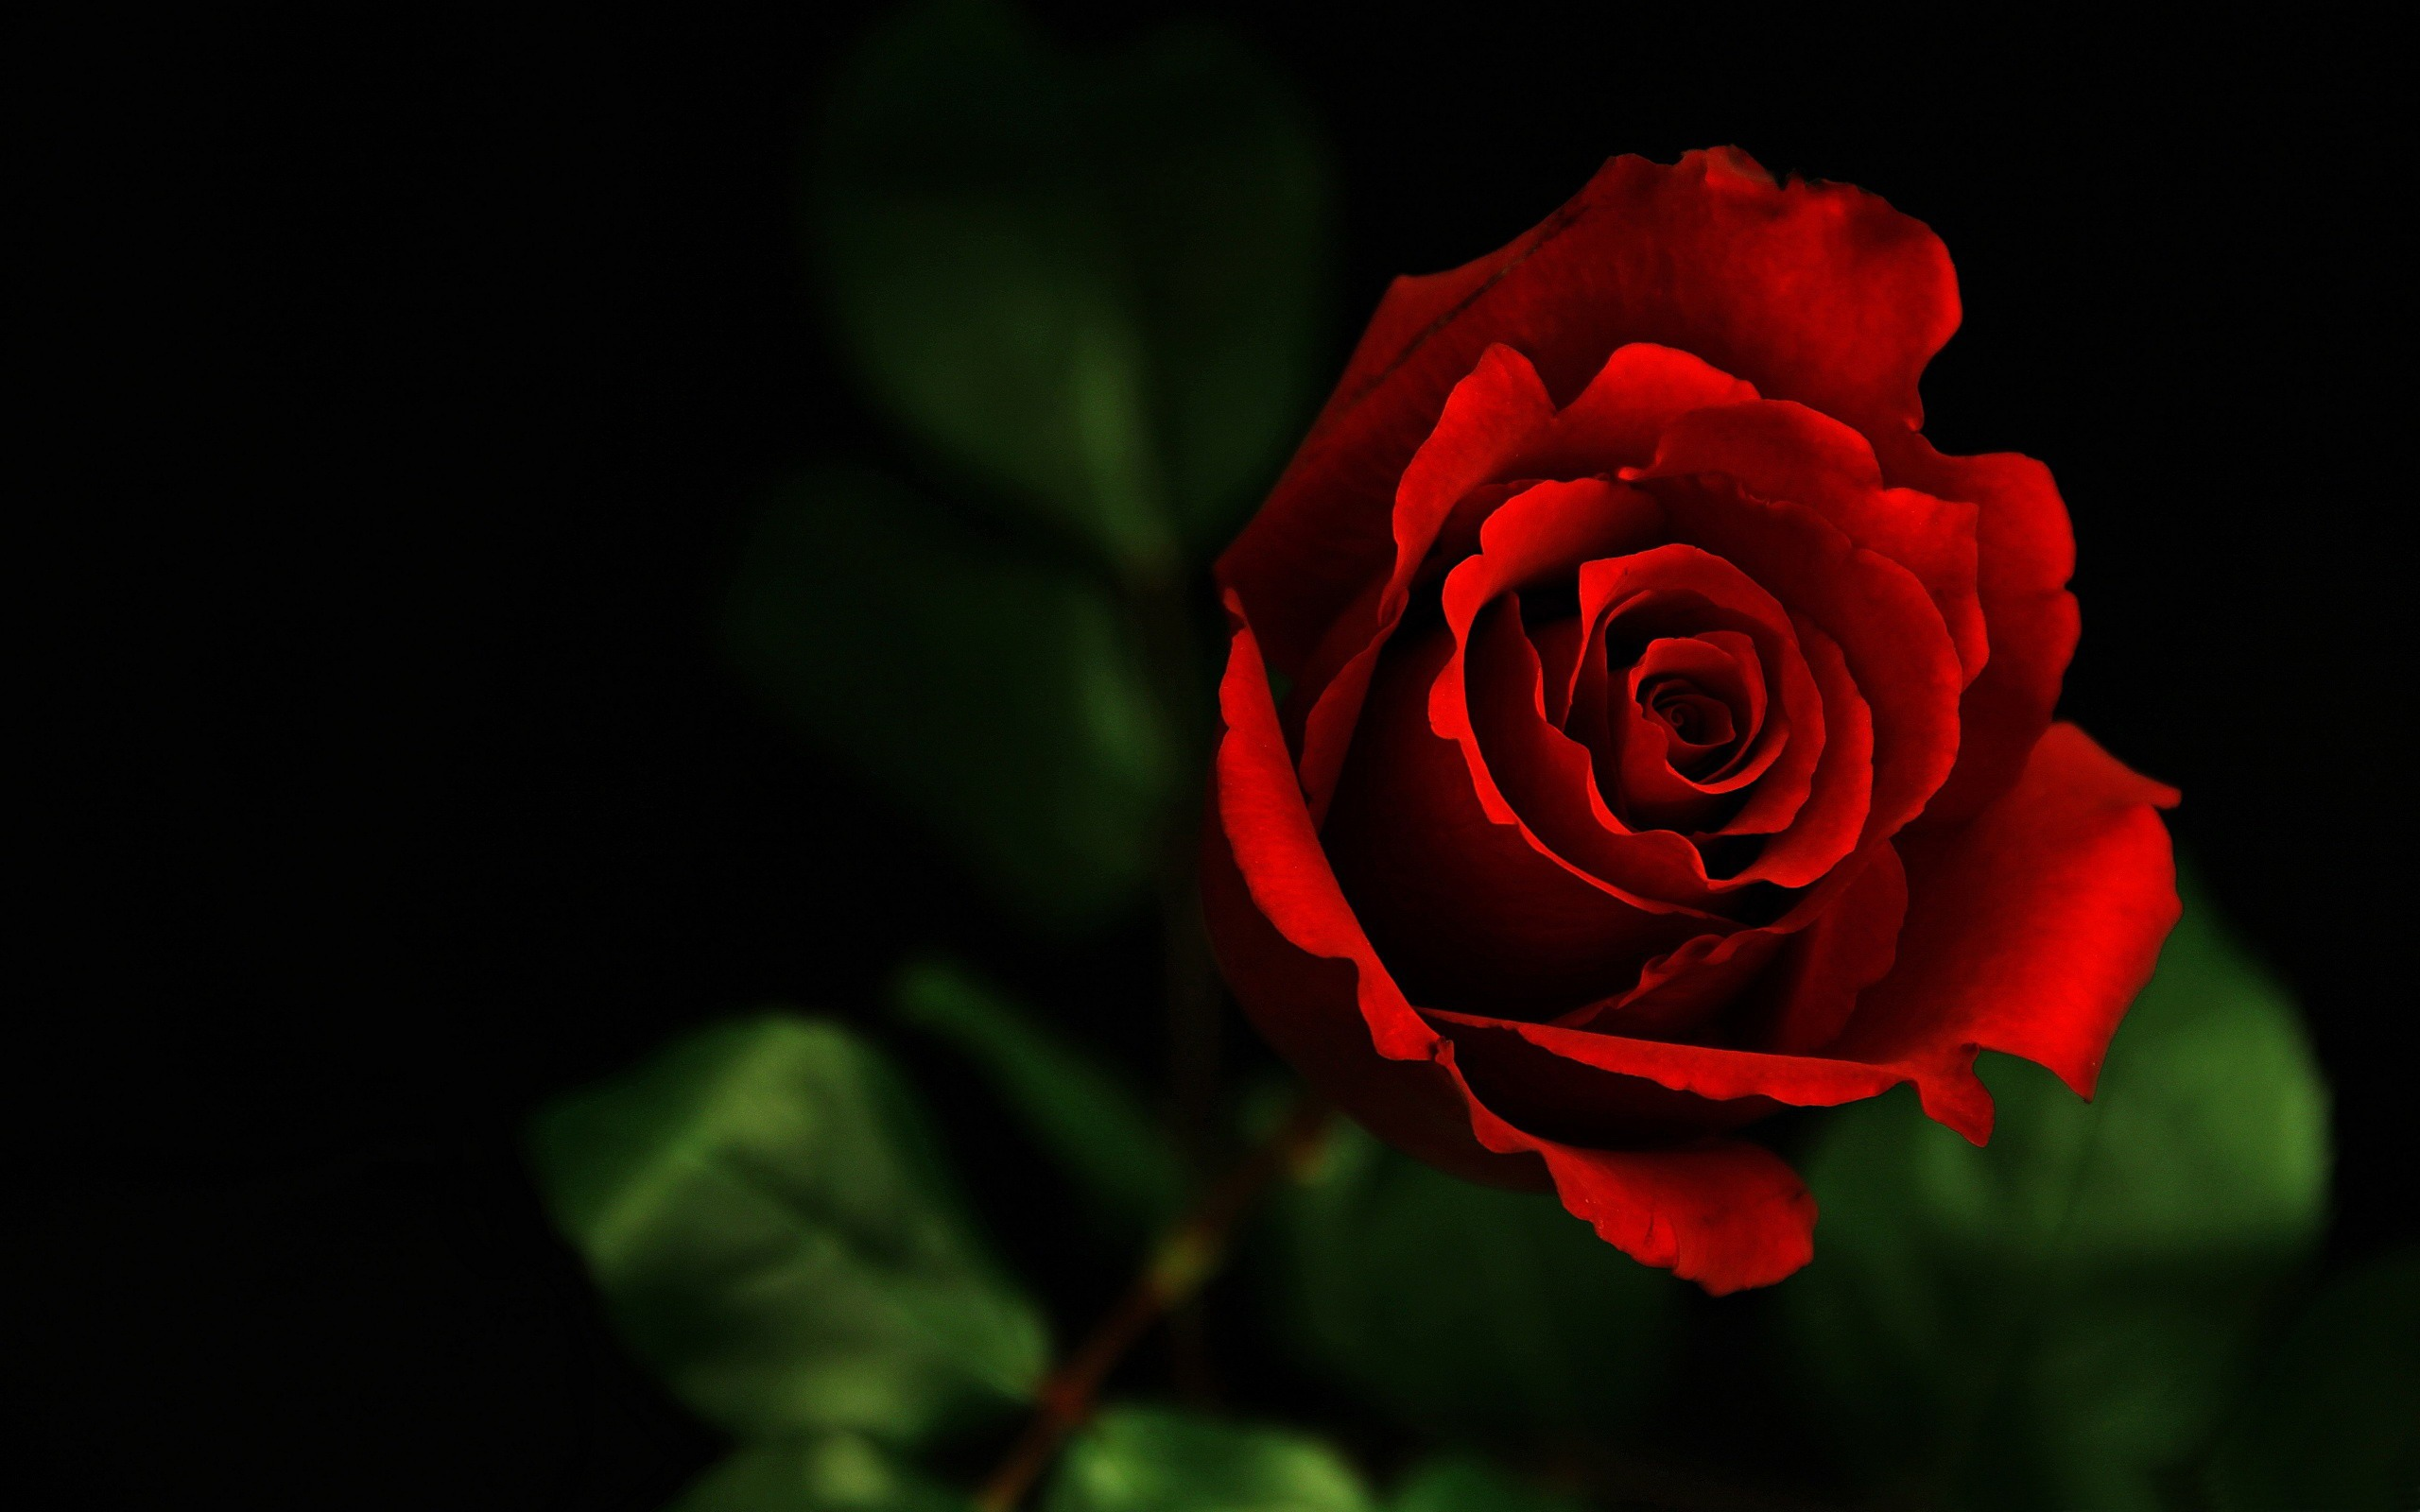 red roses tumblr background